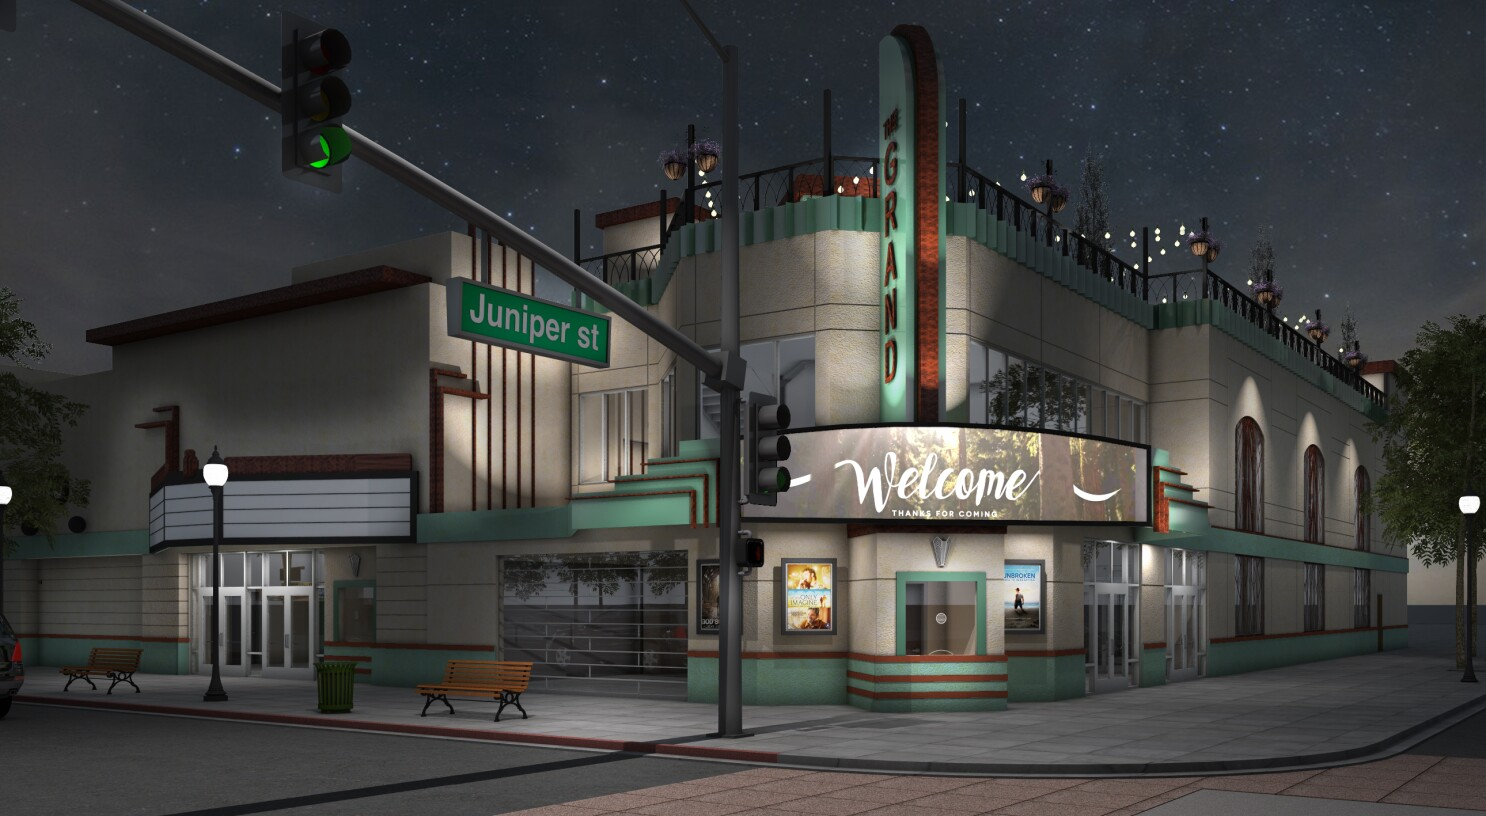 Ritz Theater Project In Escondido About To Break Ground The San Diego Union Tribune